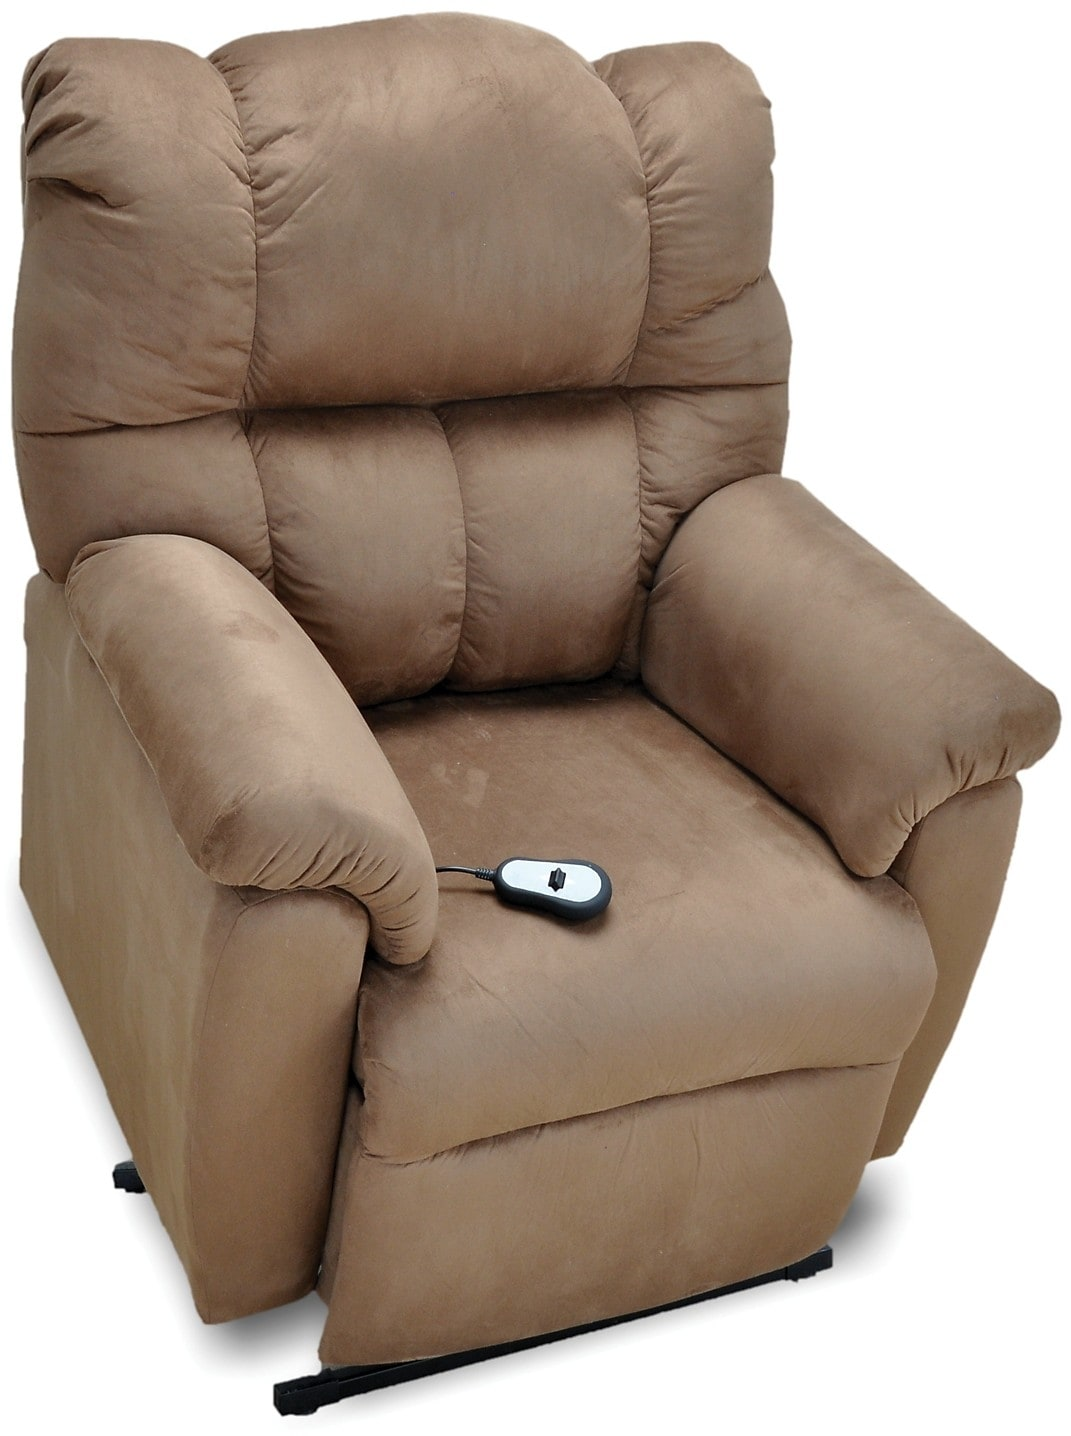 Living Room Furniture - Padded Microsuede 3-Position Power Lift Recliner - Brown